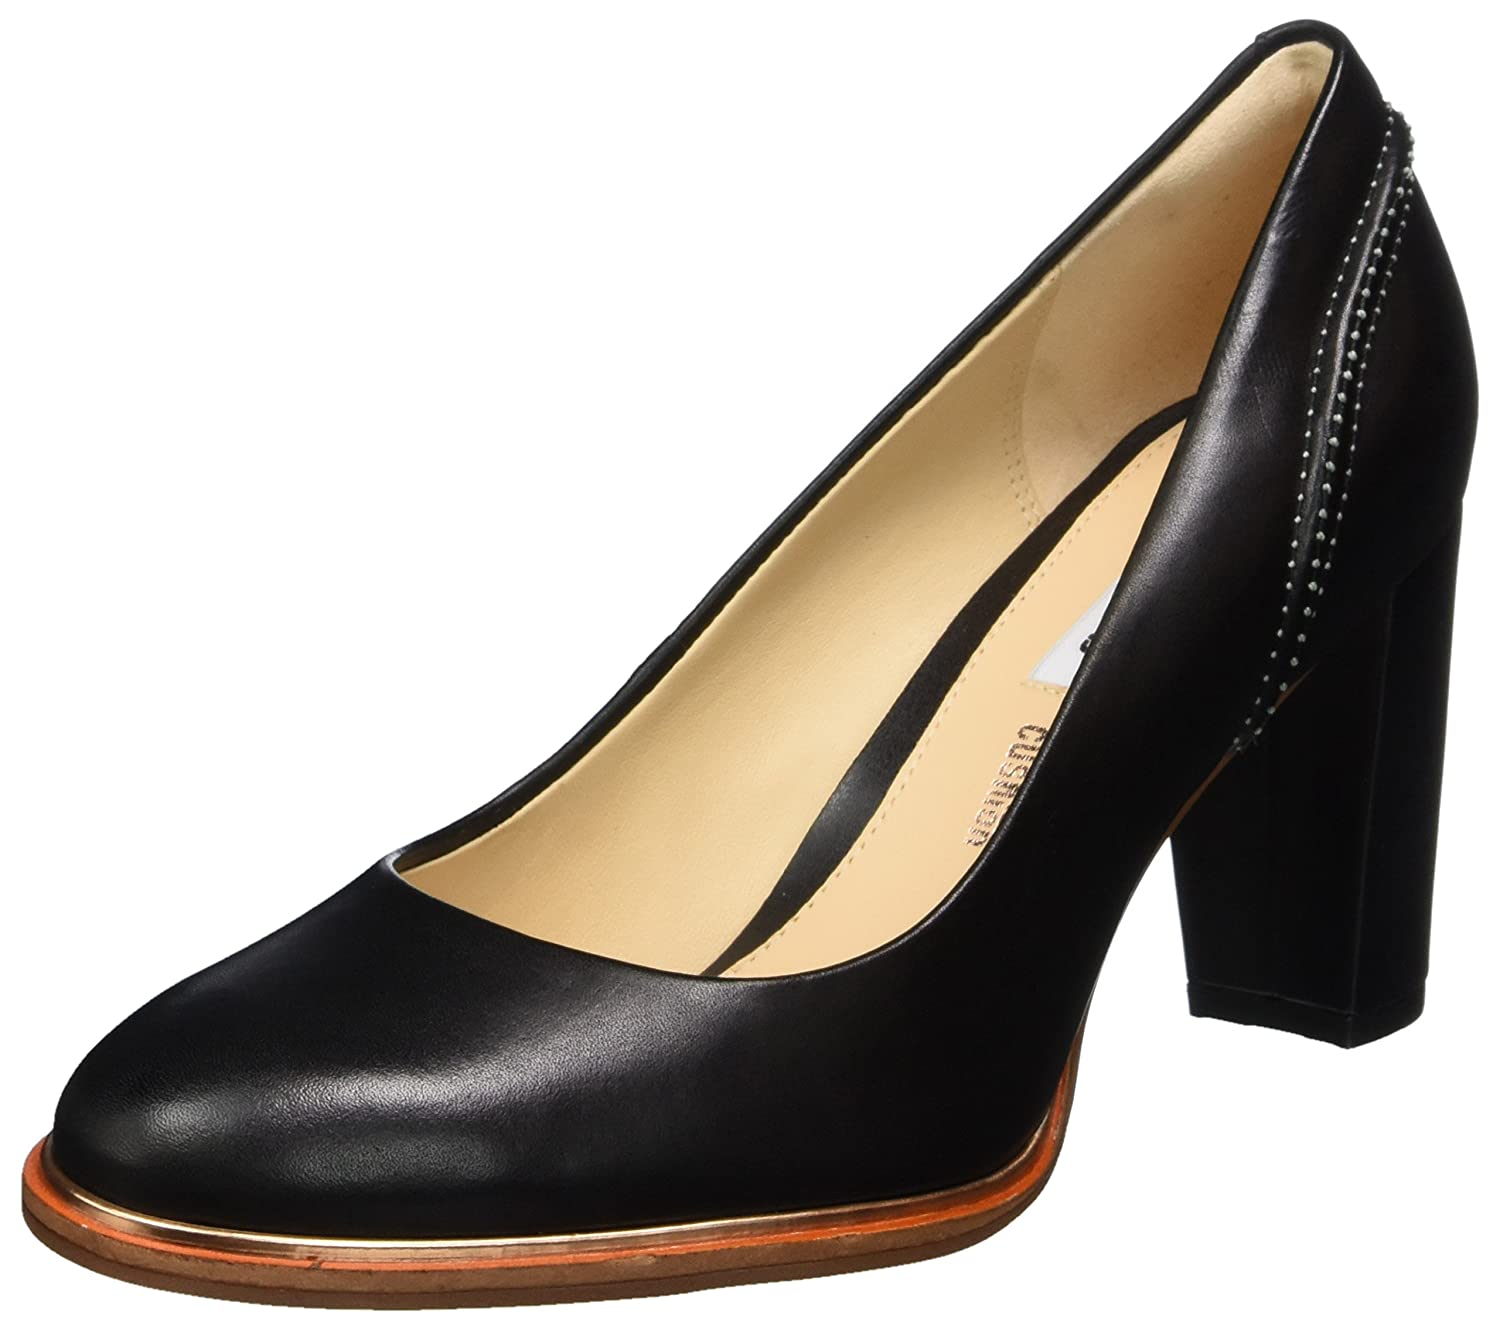 Clarks Ellis Edith, Escarpins Femme, Noir (Black Leather), 40 EU